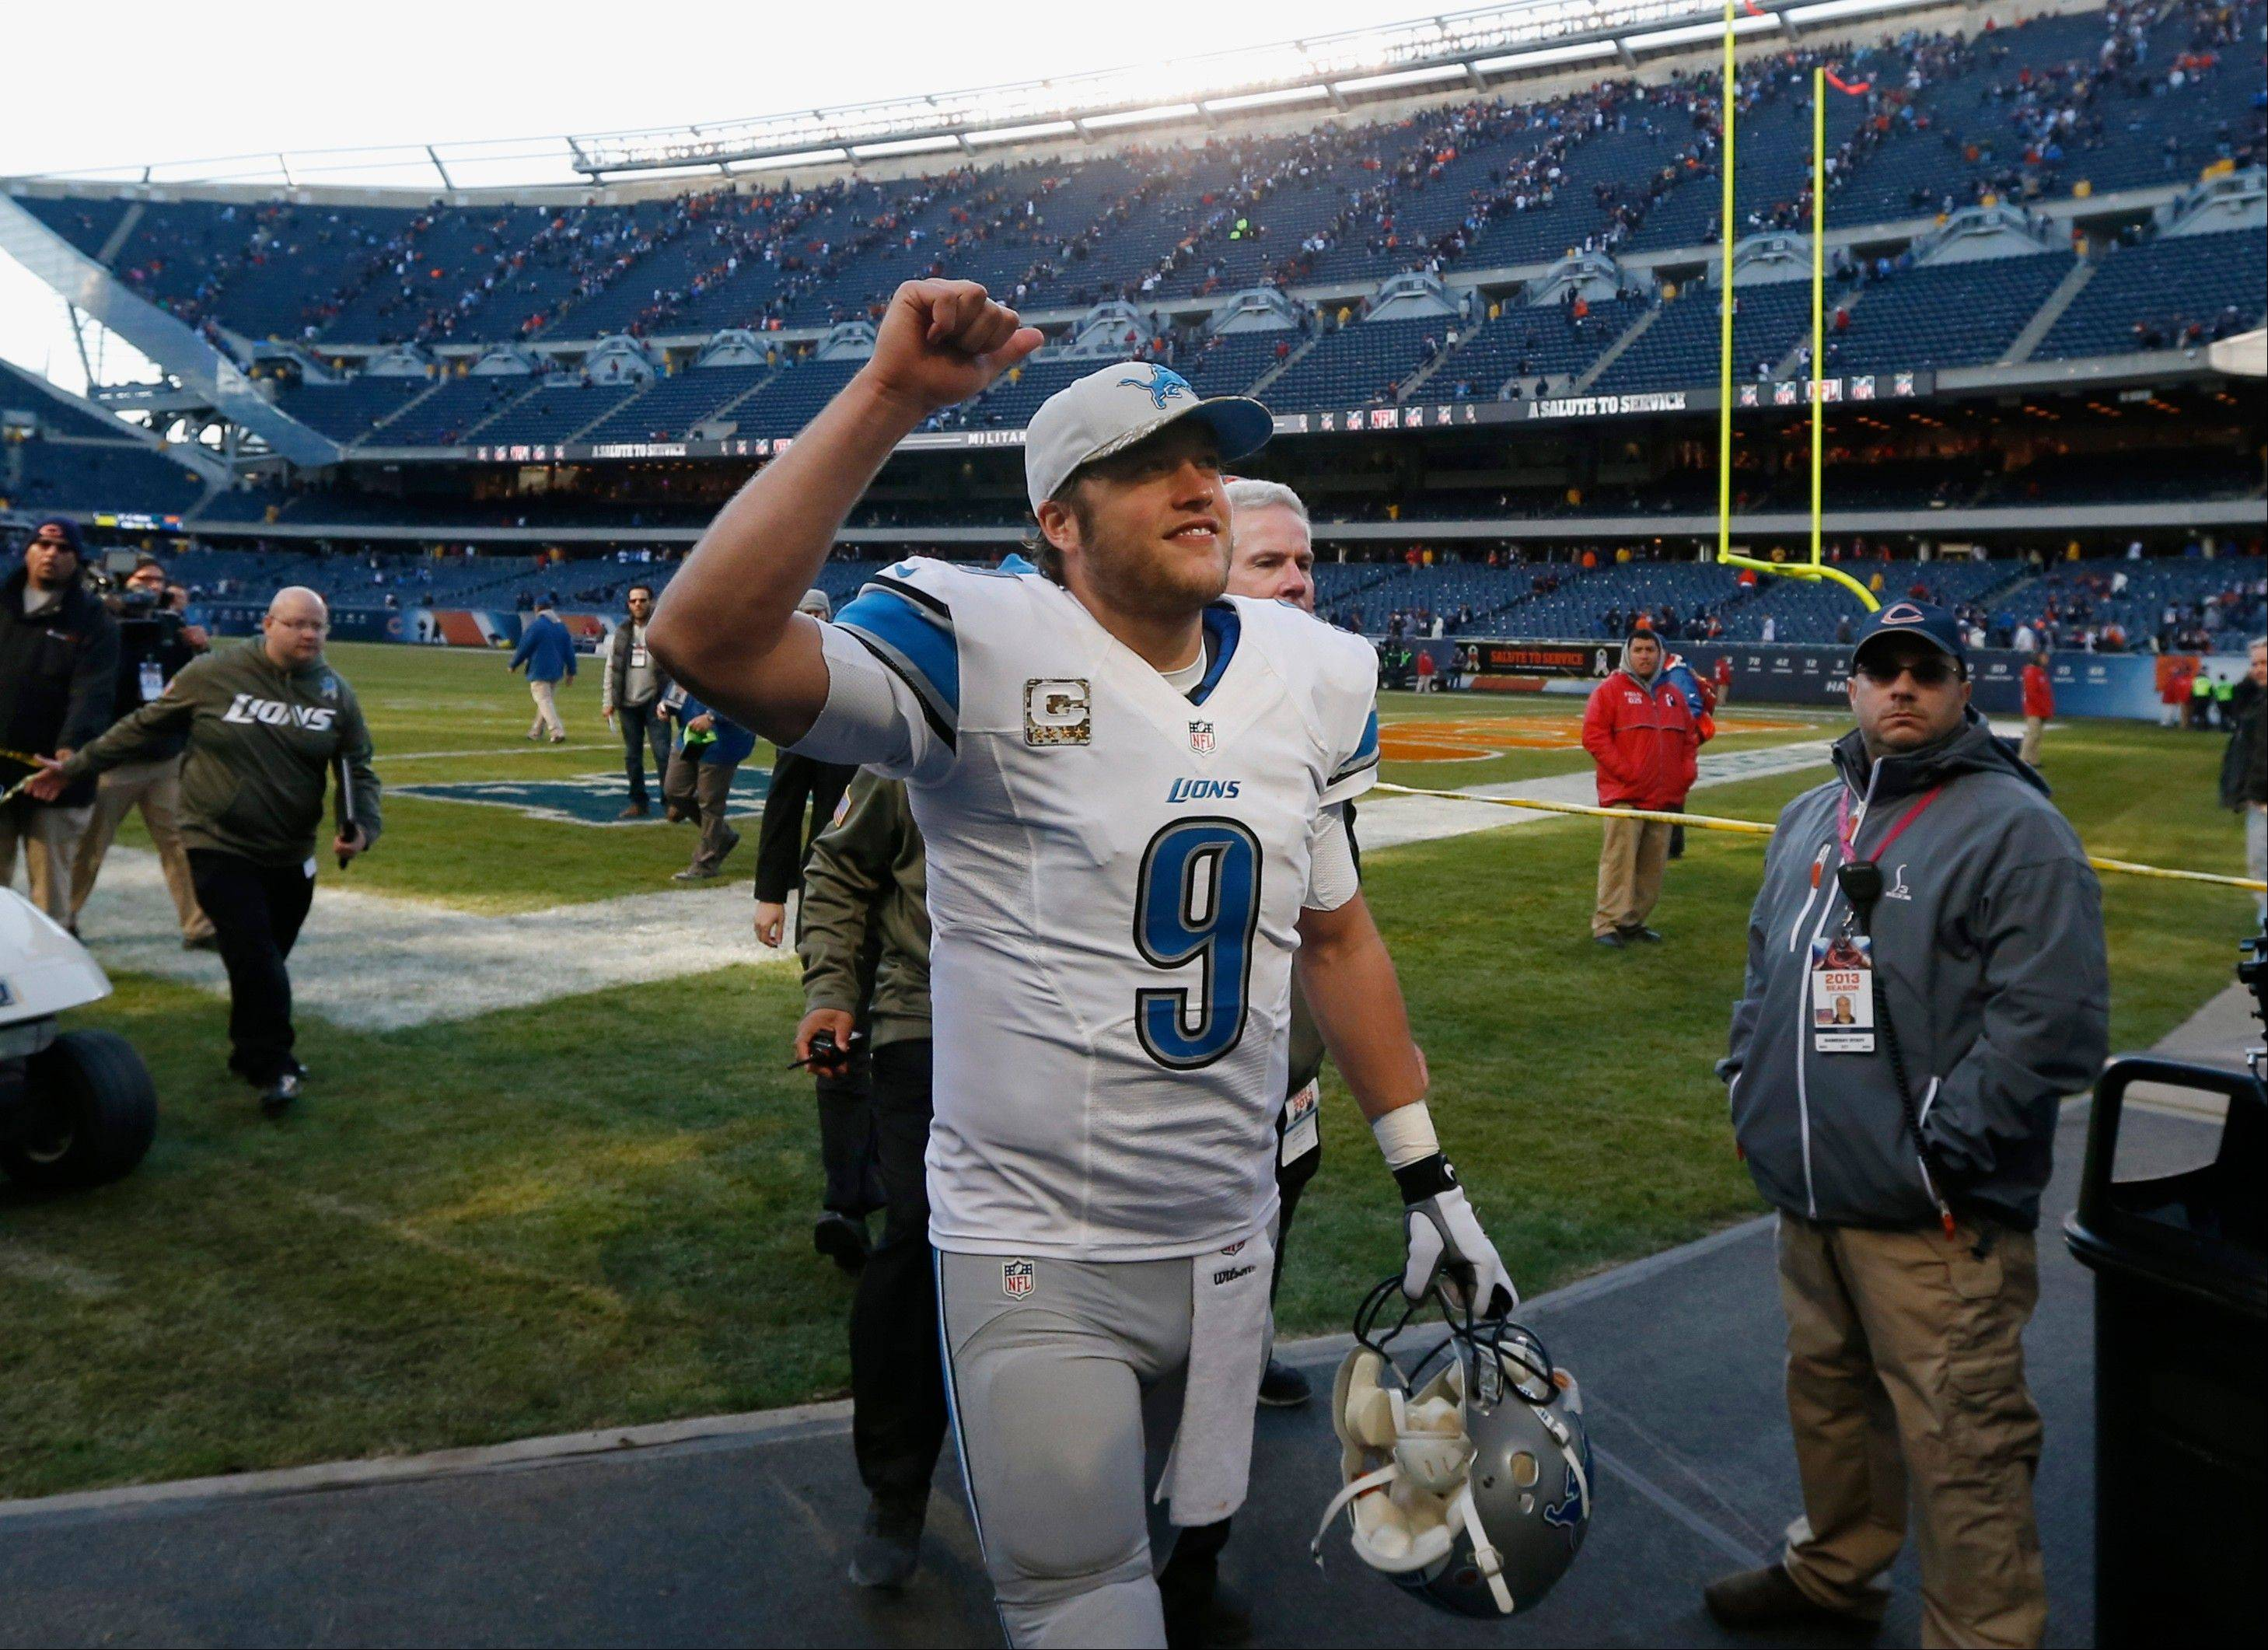 Detroit Lions quarterback Matthew Stafford celebrates Sunday as he walks off the field after the Lions' 21-19 win over the Bears at Soldier Field.